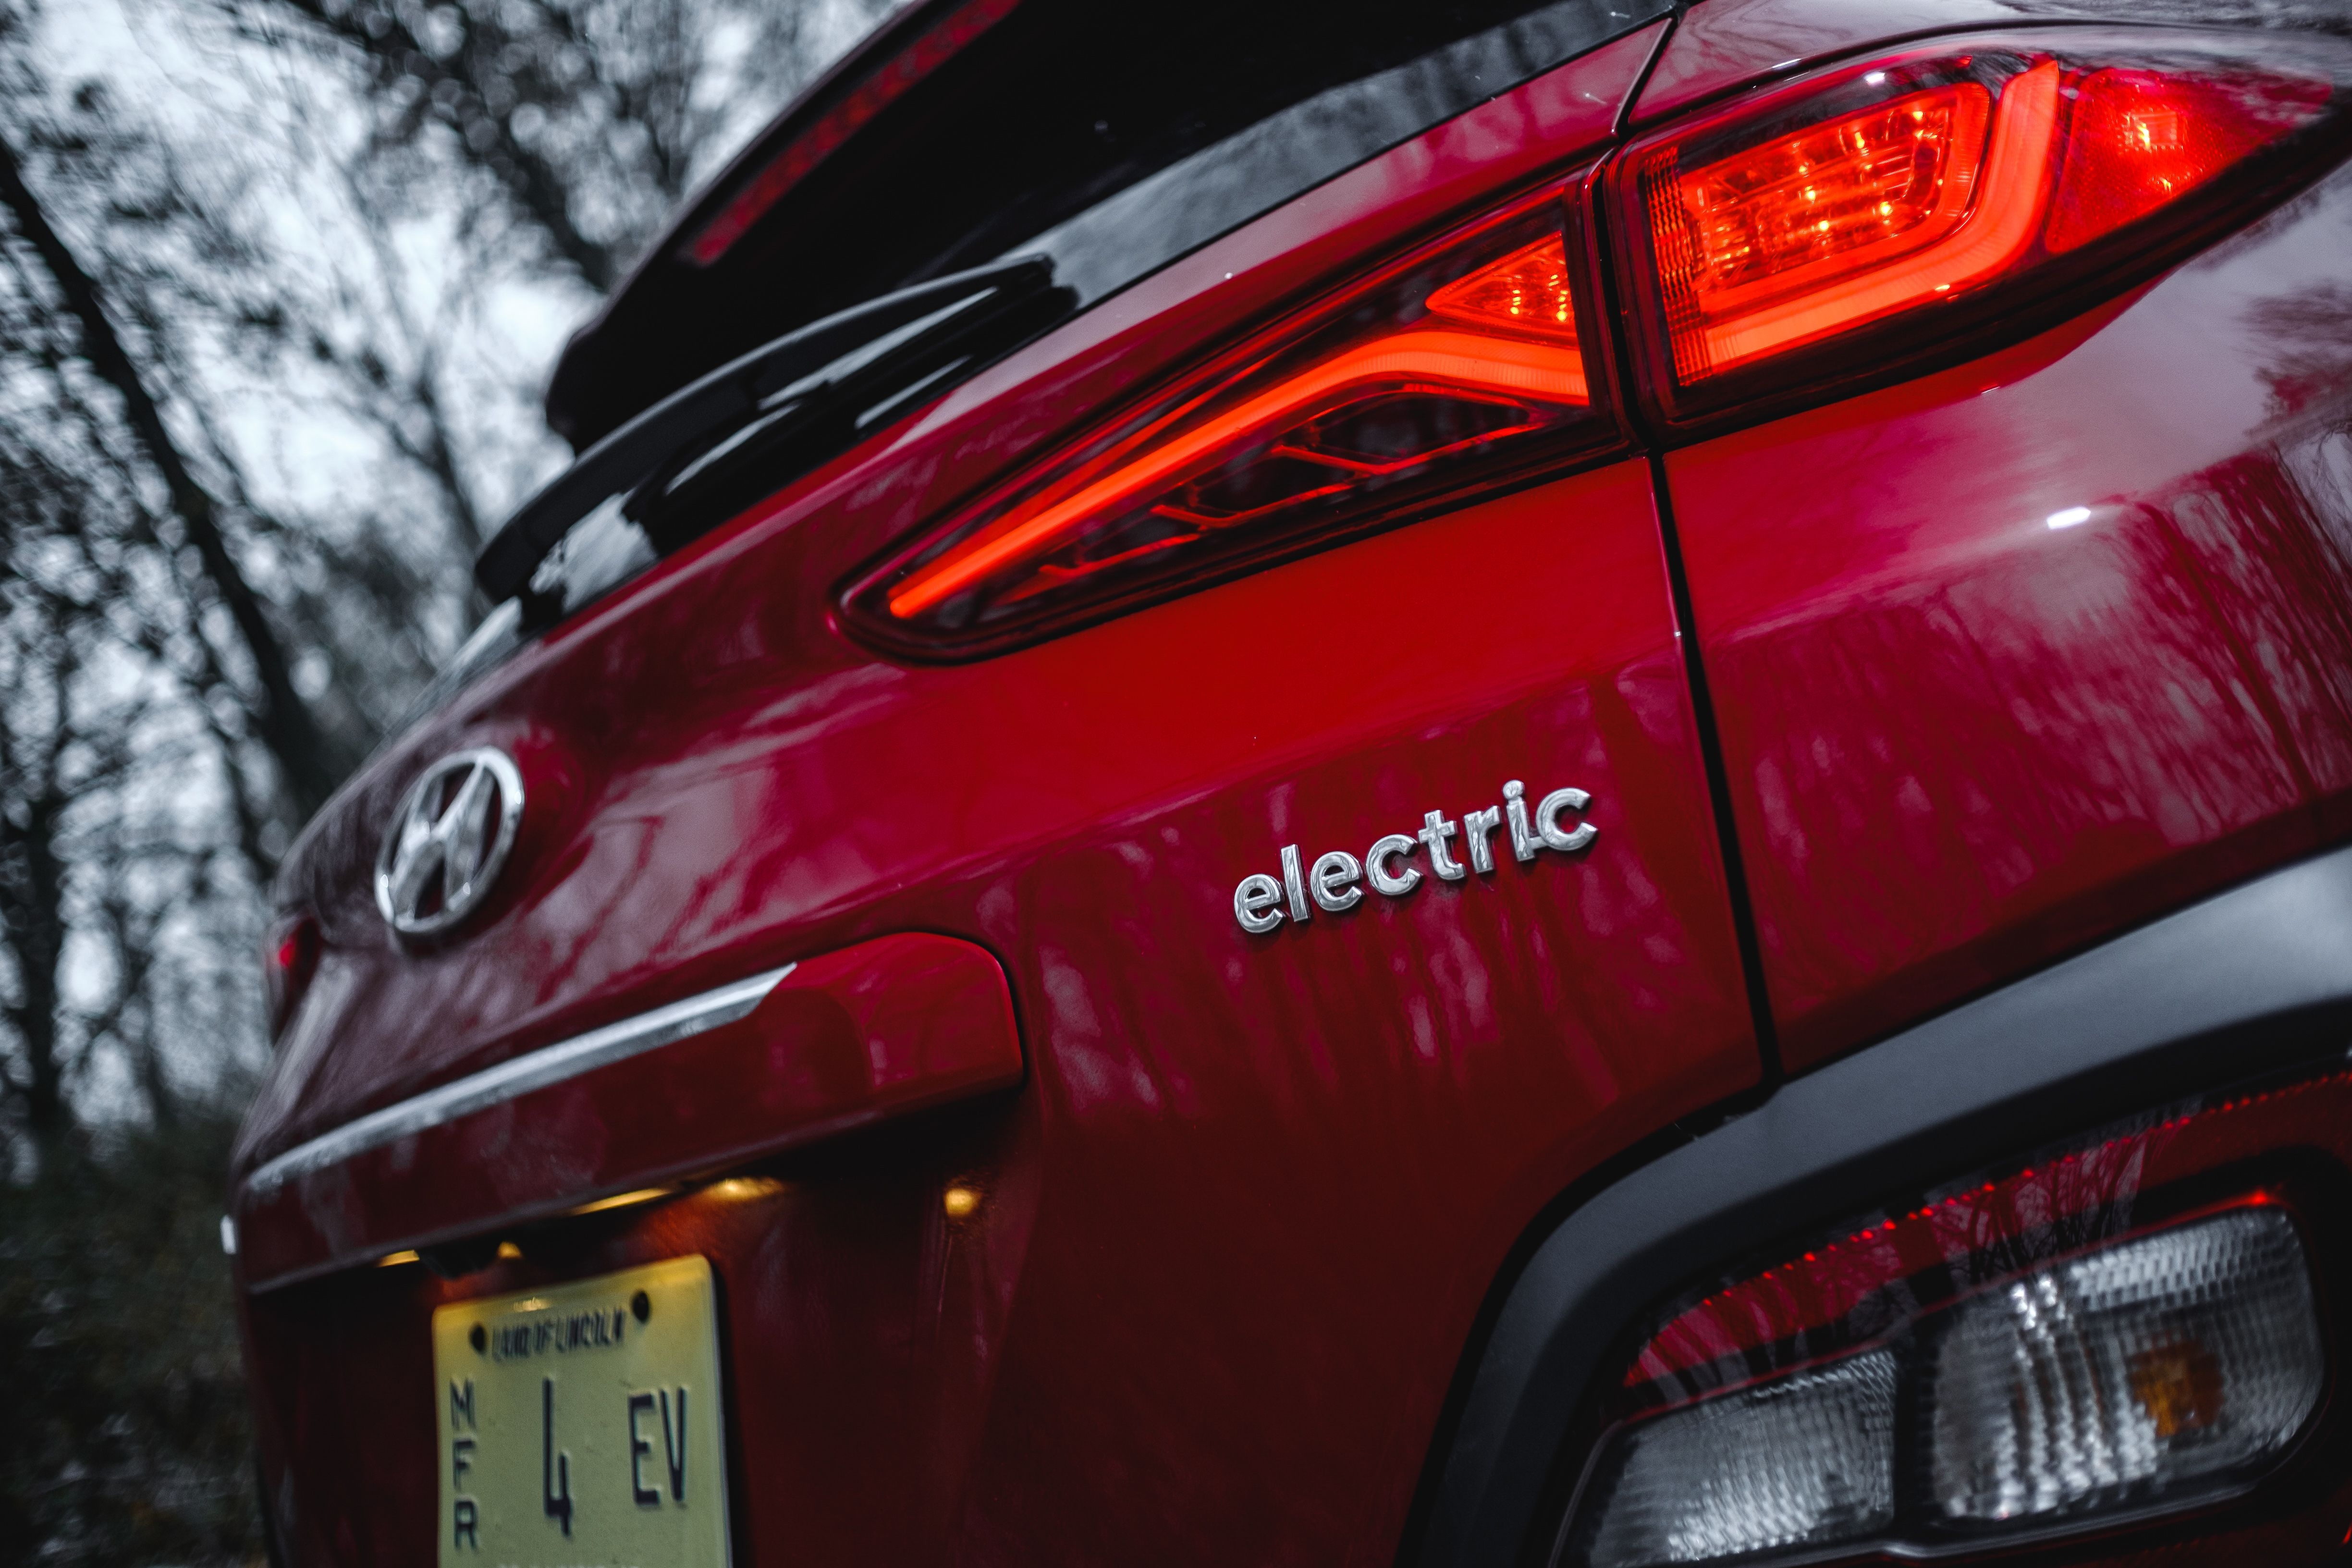 2019 Hyundai Kona Electric Reviews Price Need Auto Electrical Wiring Diagram 2017 2018 Best Cars Photos And Specs Car Driver